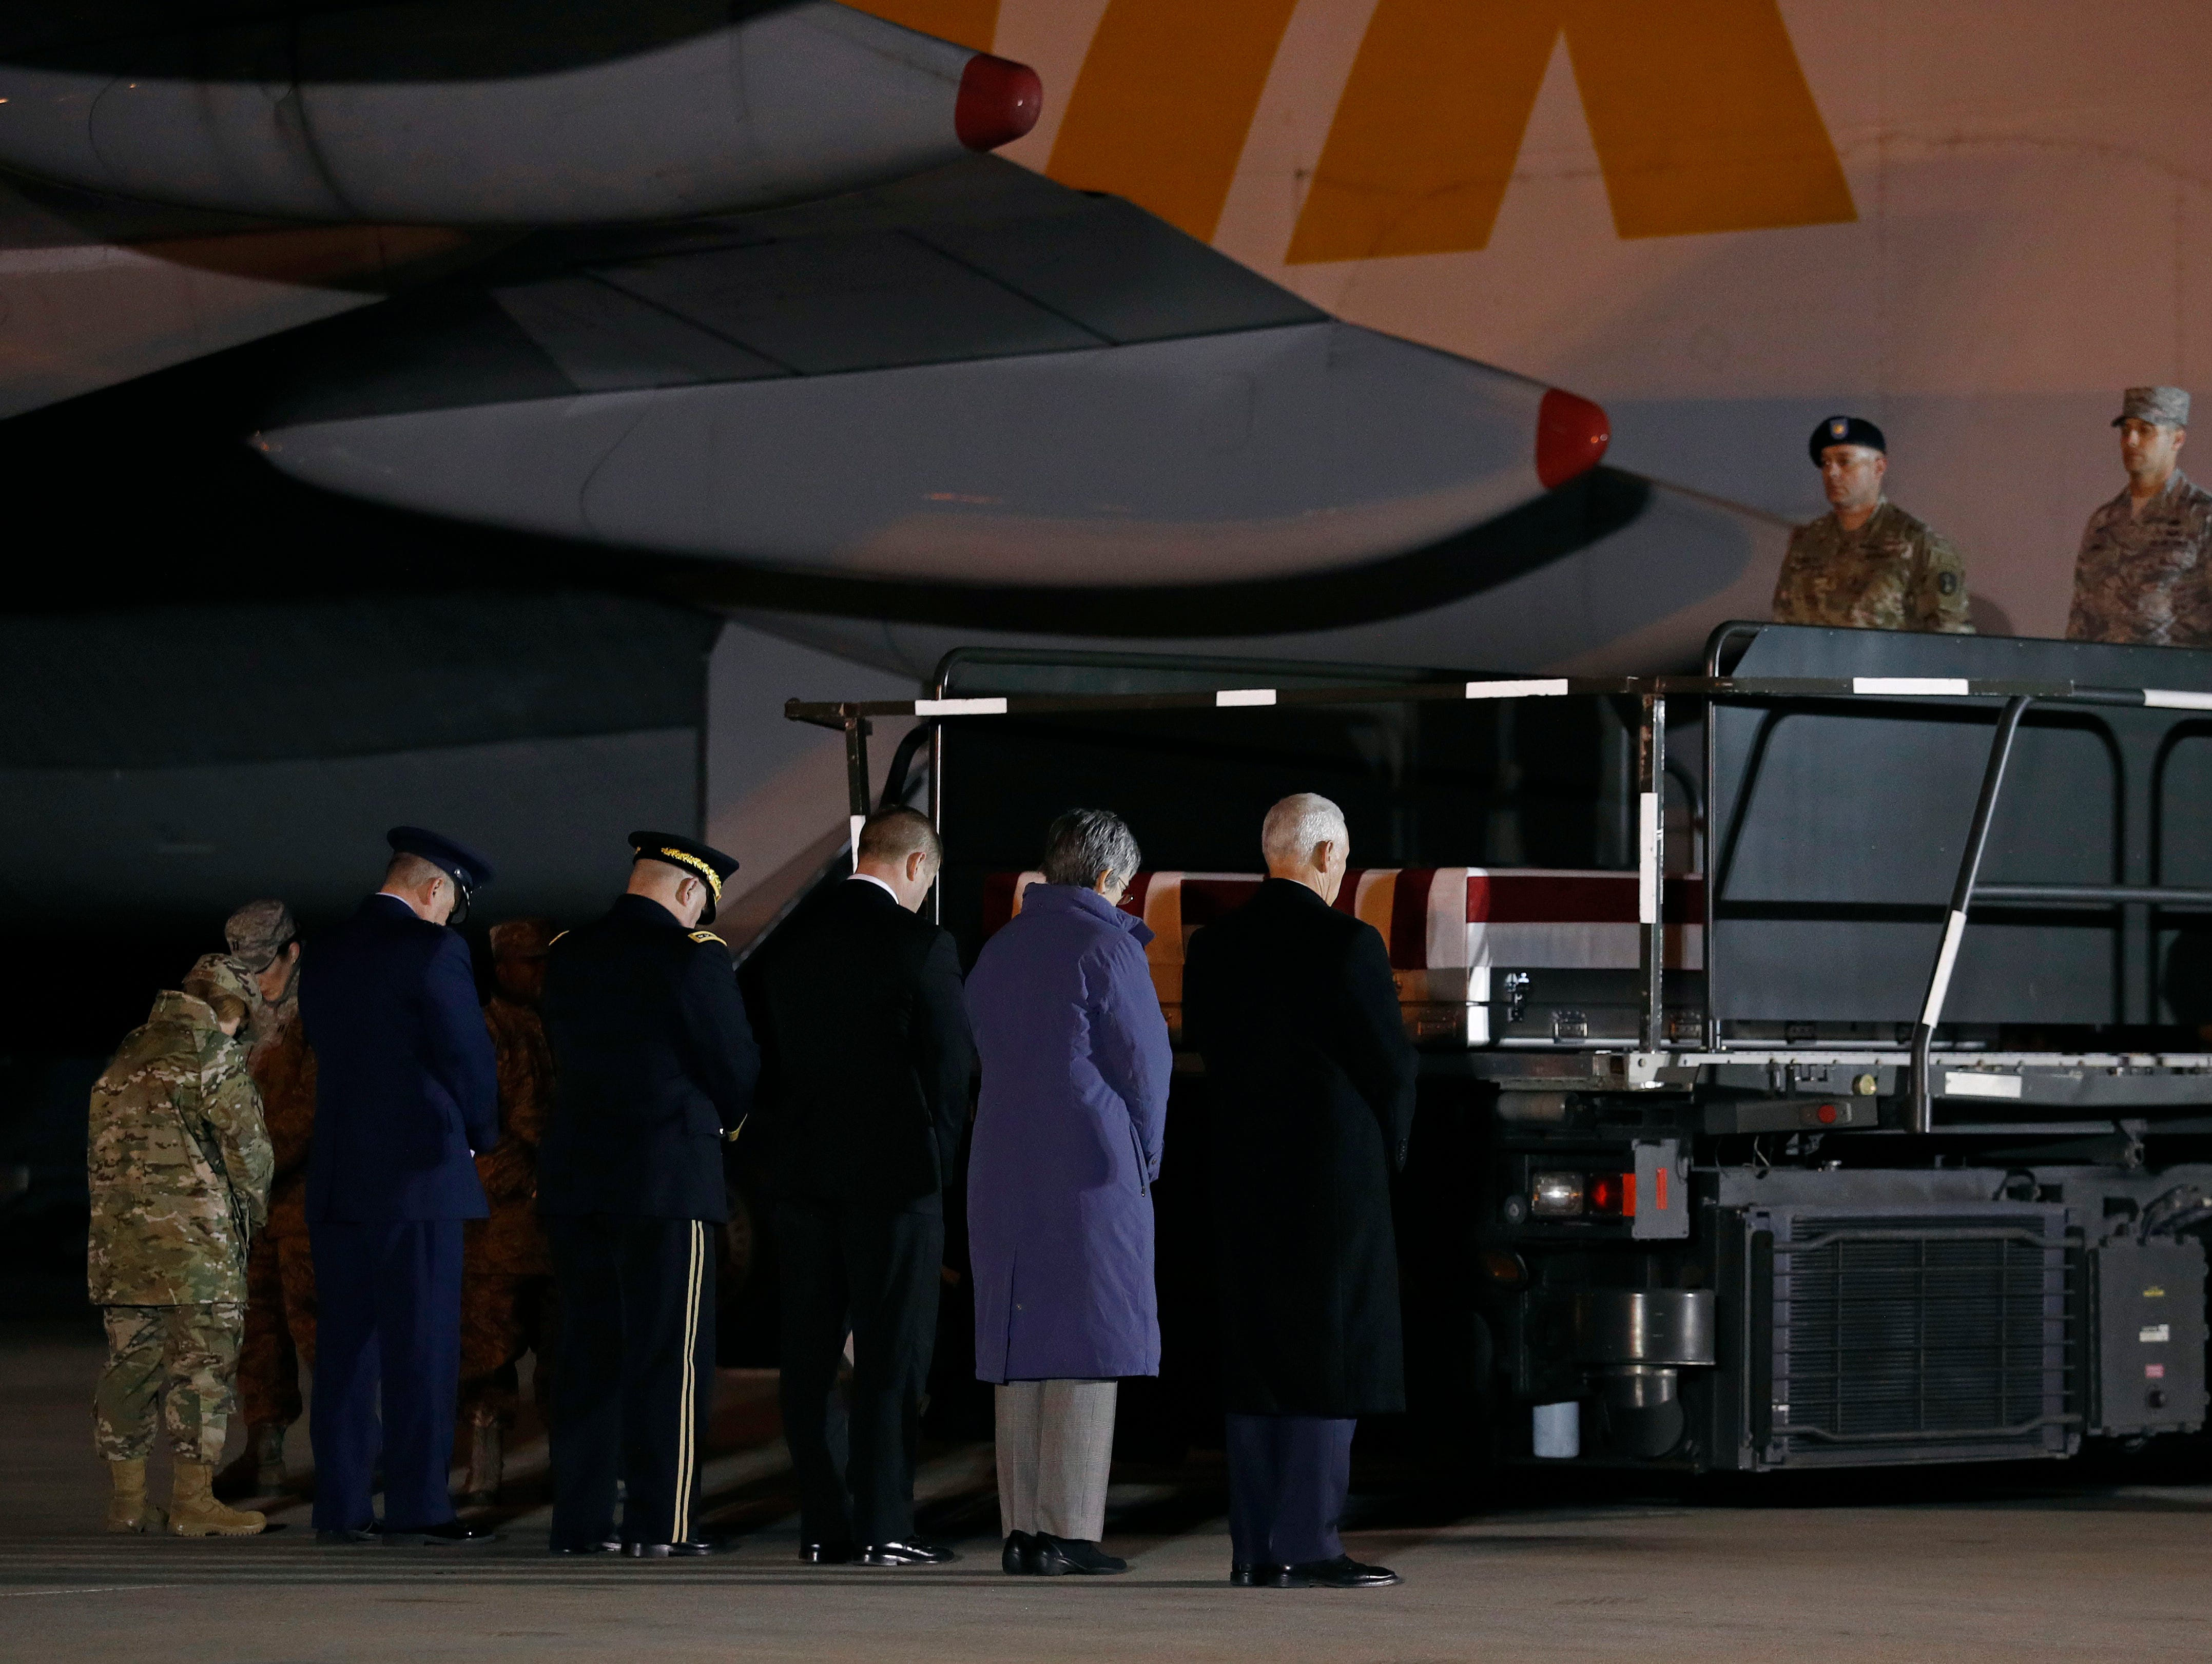 Vice President Mike Pence, right, pauses in prayer with members of an official party in front of transfer cases containing the remains of U.S. Army Capt. Andrew P. Ross and U.S. Air Force Staff Sgt. Dylan J. Elchin, Friday, Nov. 30, 2018, at Dover Air Force Base, Del. According to the Department of Defense, Ross, 29, of Lexington, Va., and Elchin, 25, of Hookstown, Pa., were killed Nov. 27, 2018, by a roadside bomb in Andar, Ghazni Province, Afghanistan.